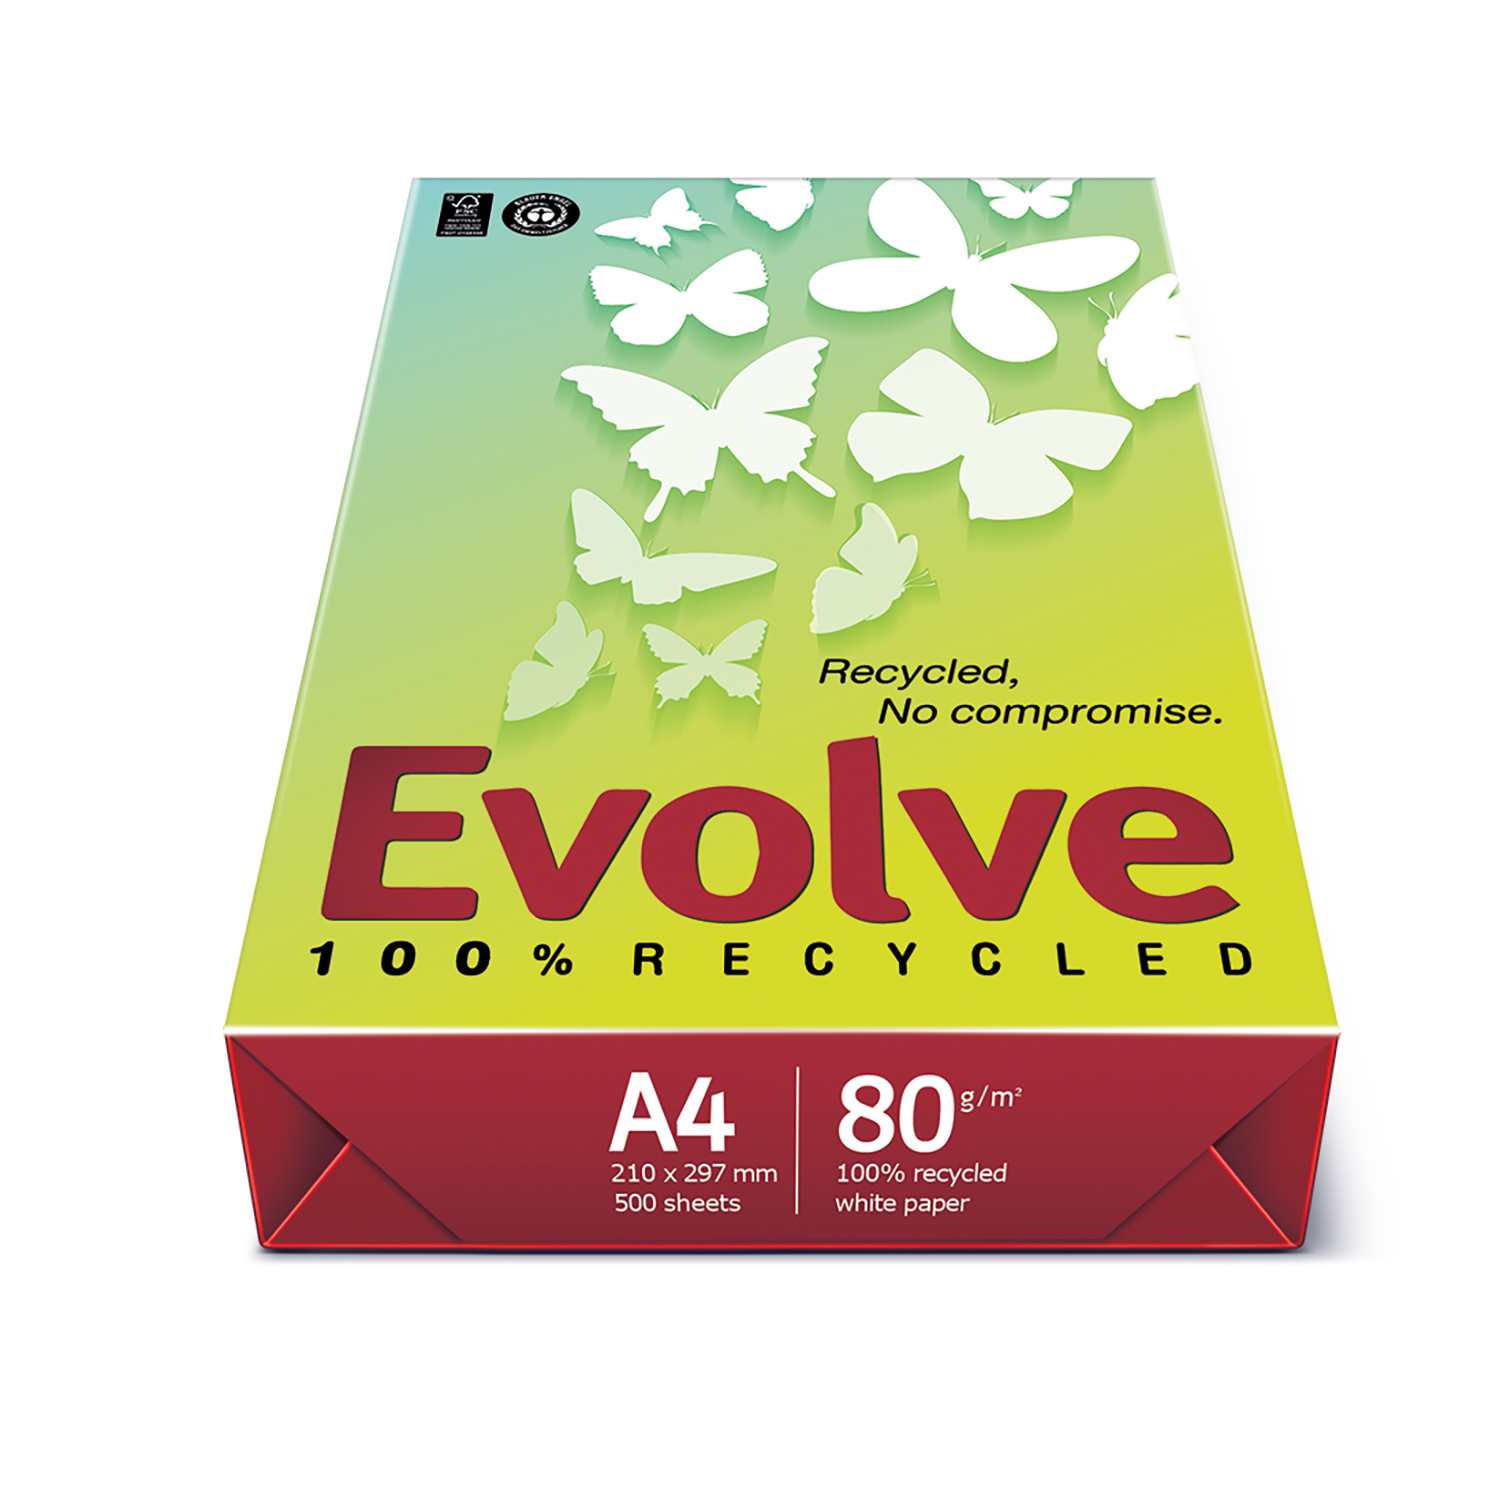 Evolve Everyday Paper FSC Recycled Ream-wrapped 80gsm A4 White Ref EVOL80A4 [500 Sheets]